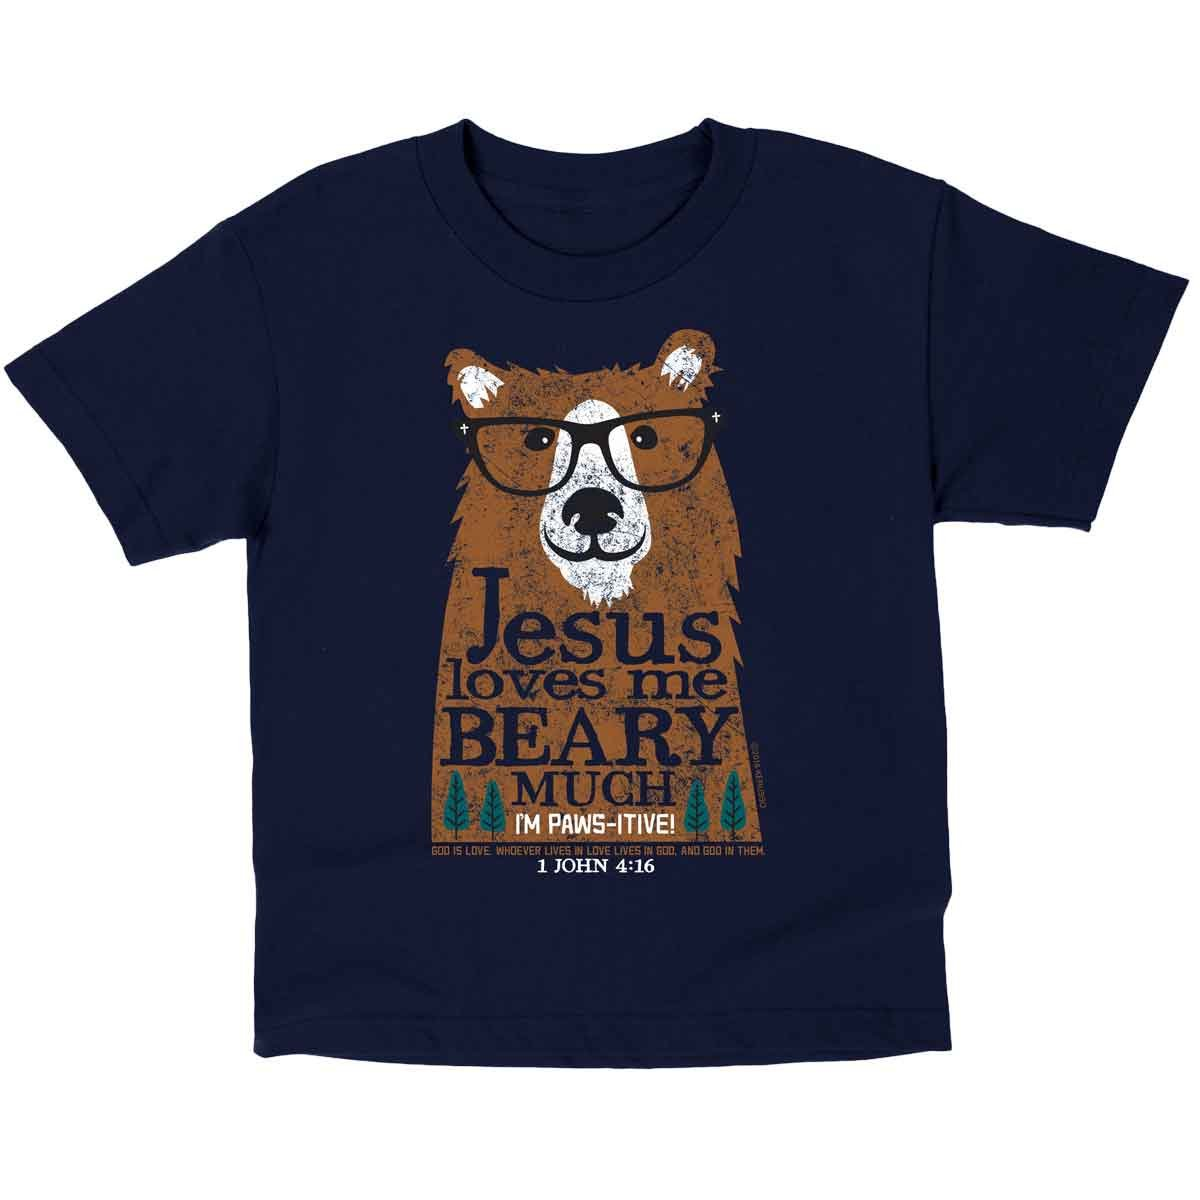 Jesus Loves Me Beary Much, Kidz Tee, 5T, Navy - Christian Fashion Gifts